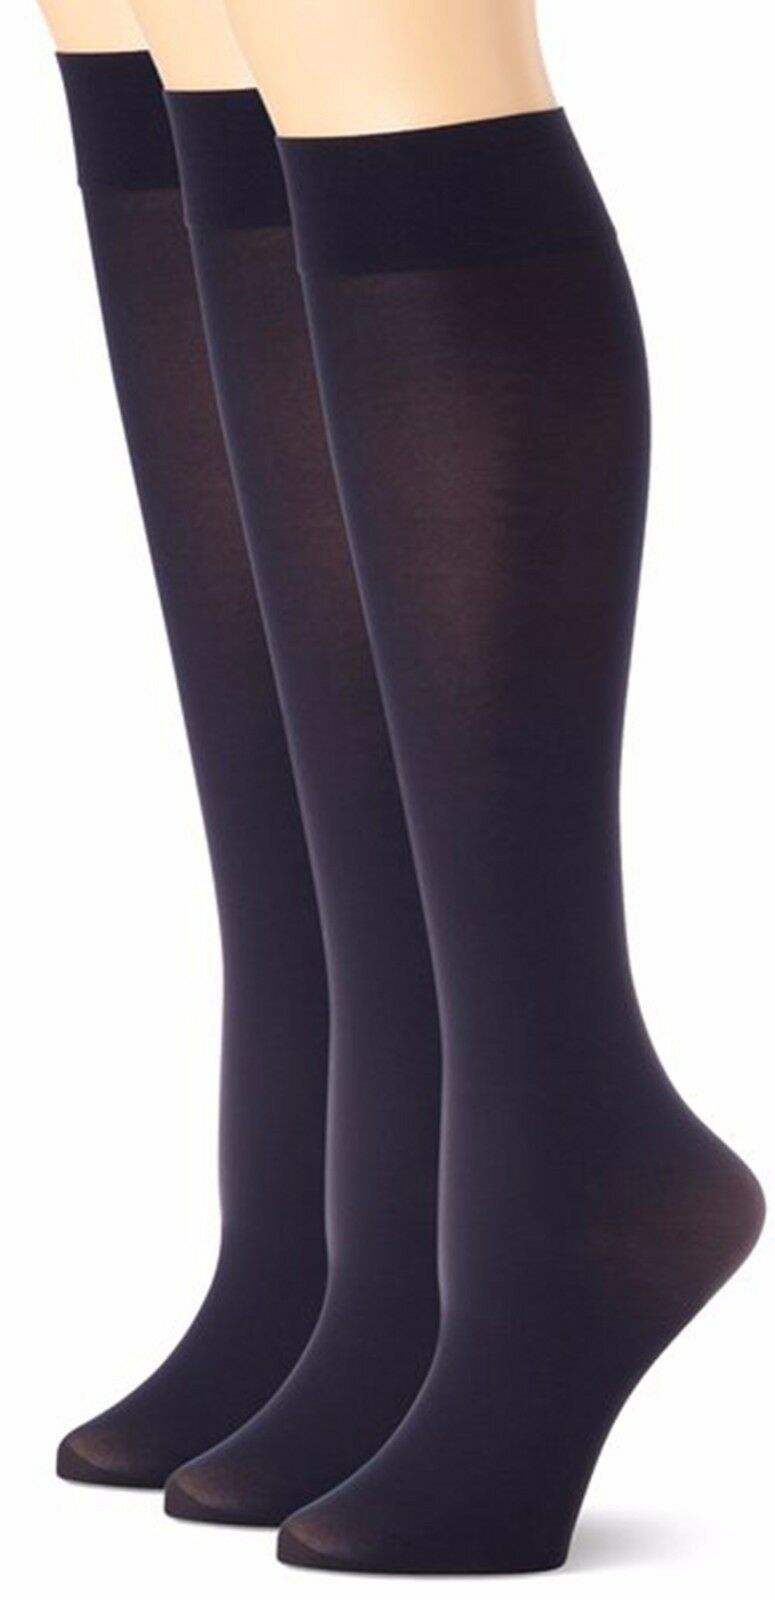 3 Pairs Pack Women Stretchy Spandex Trouser Socks Opaque Knee High | EBay